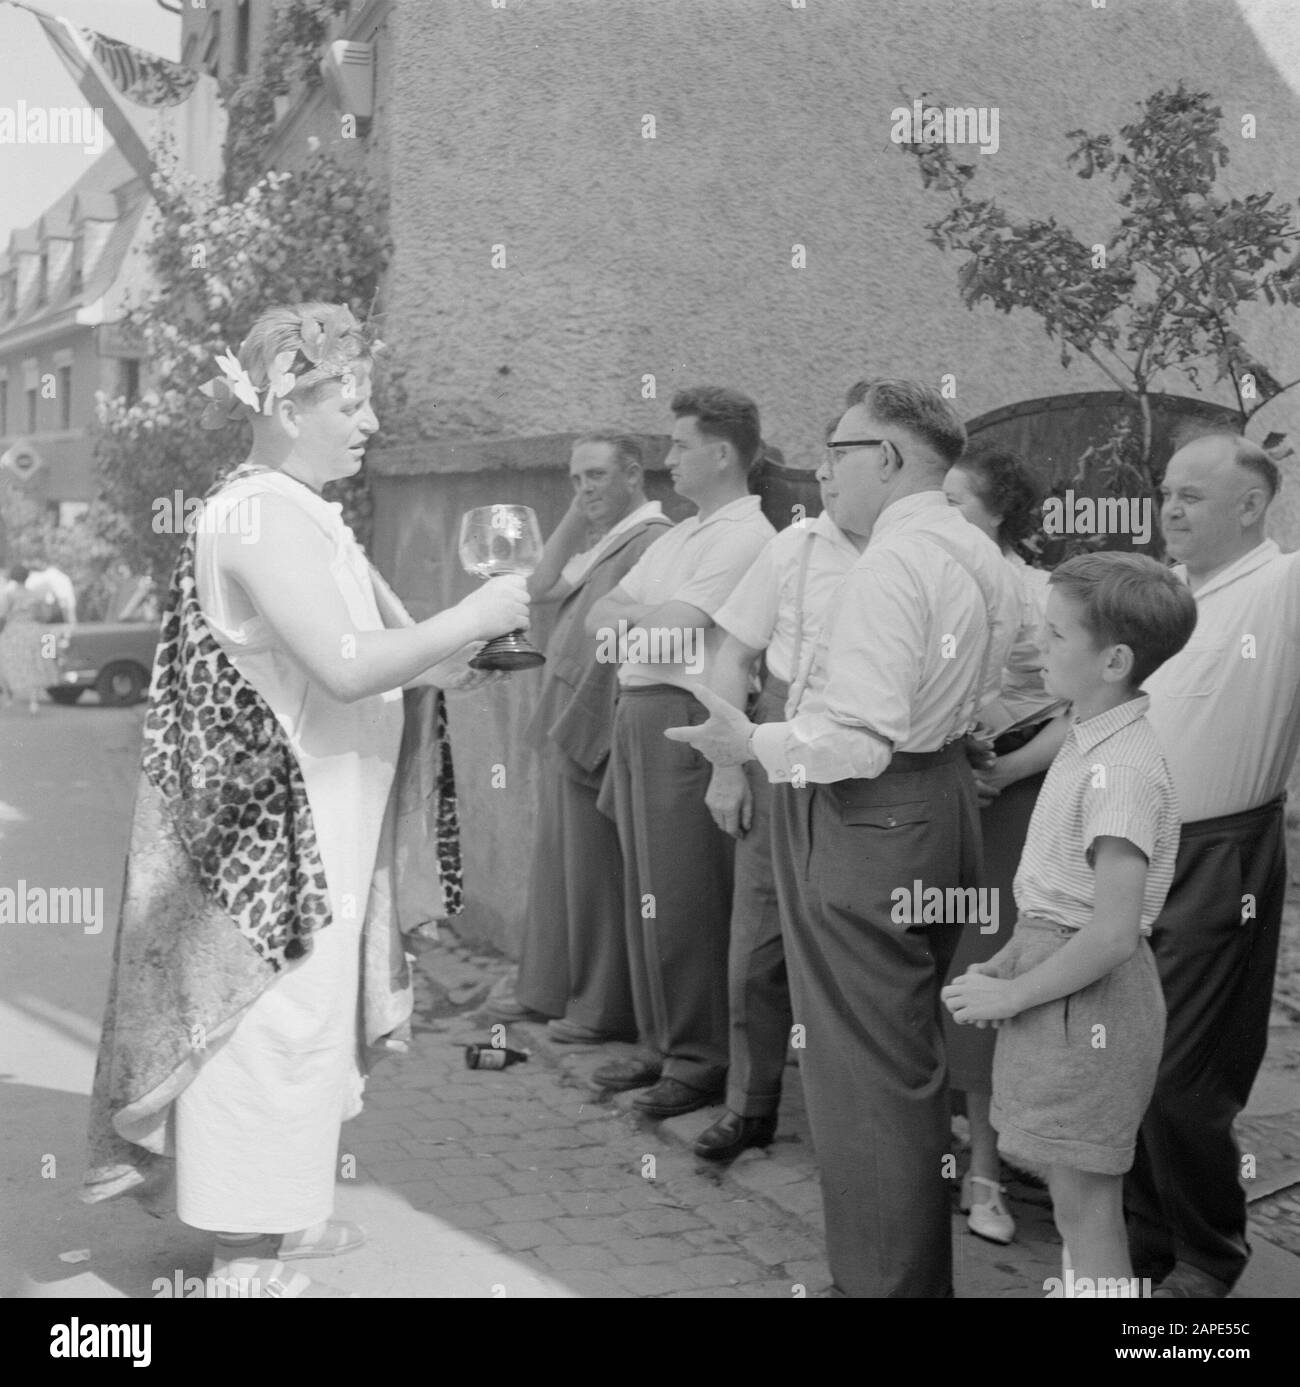 Moselle: Costume and Wine Festival Description: Bacchus with a Moselle glass with wine at spectators of the parade Date: 4 July 1959 Location: Germany, Kröv, Rhineland-Palatinate, West Germany Keywords: costumes, parades, public, folk festivals, wine Stock Photo